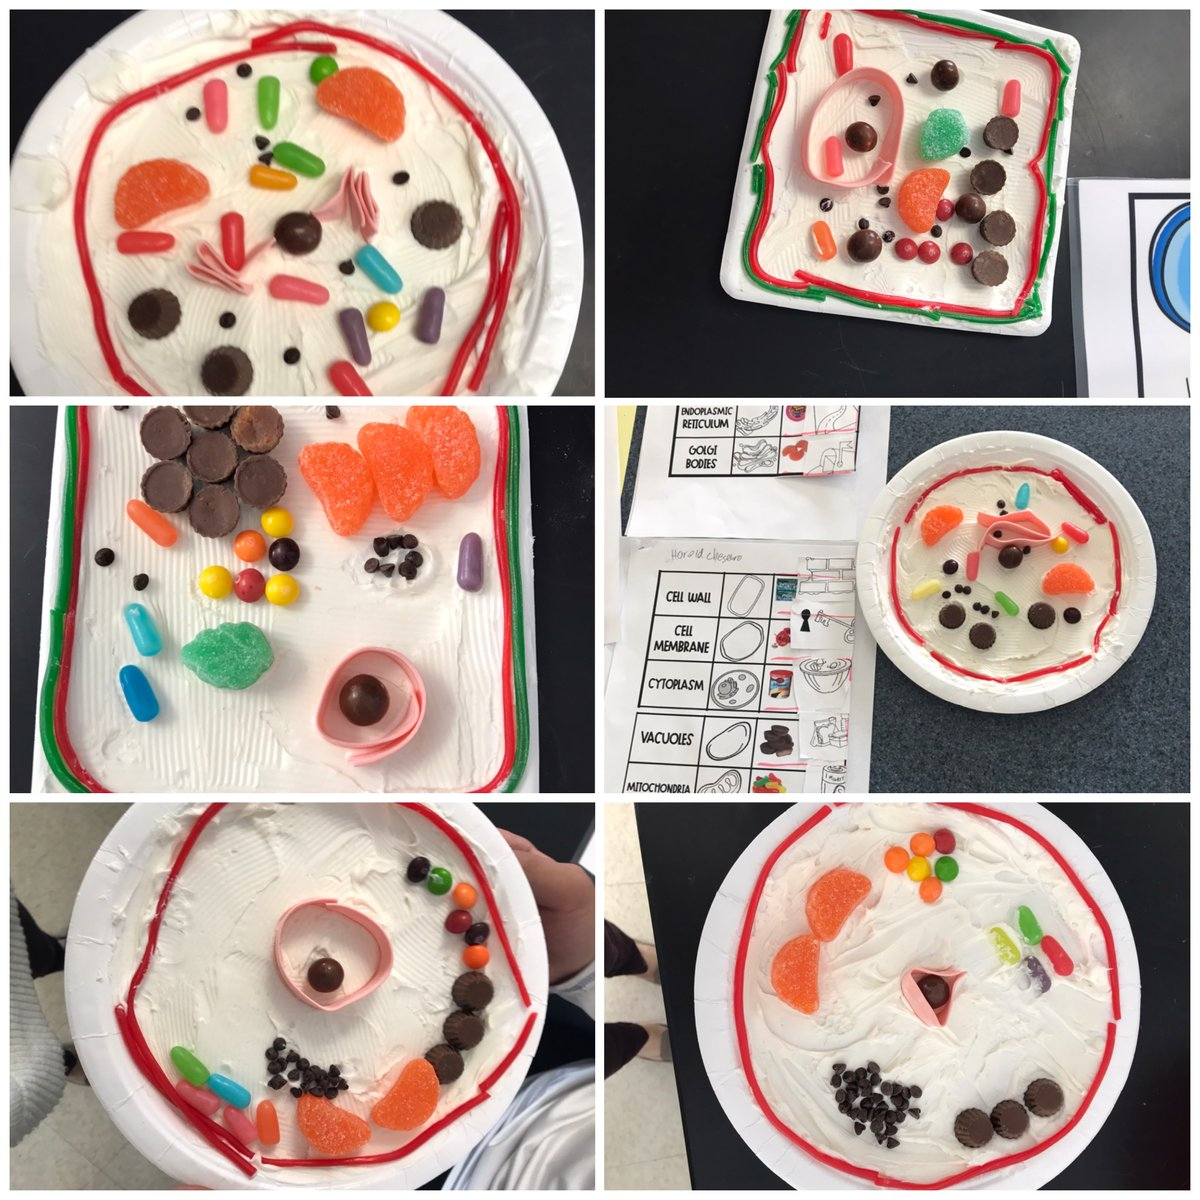 Biology lessons may not always make you hungry, but #moboces science teacher Christine Curtacci led a yummy lesson on cell organelle! Students made a plant or animal cell and using candies to describe each organelle and its function. #handsonlearning #studentengagementpic.twitter.com/aQP8id1pSc